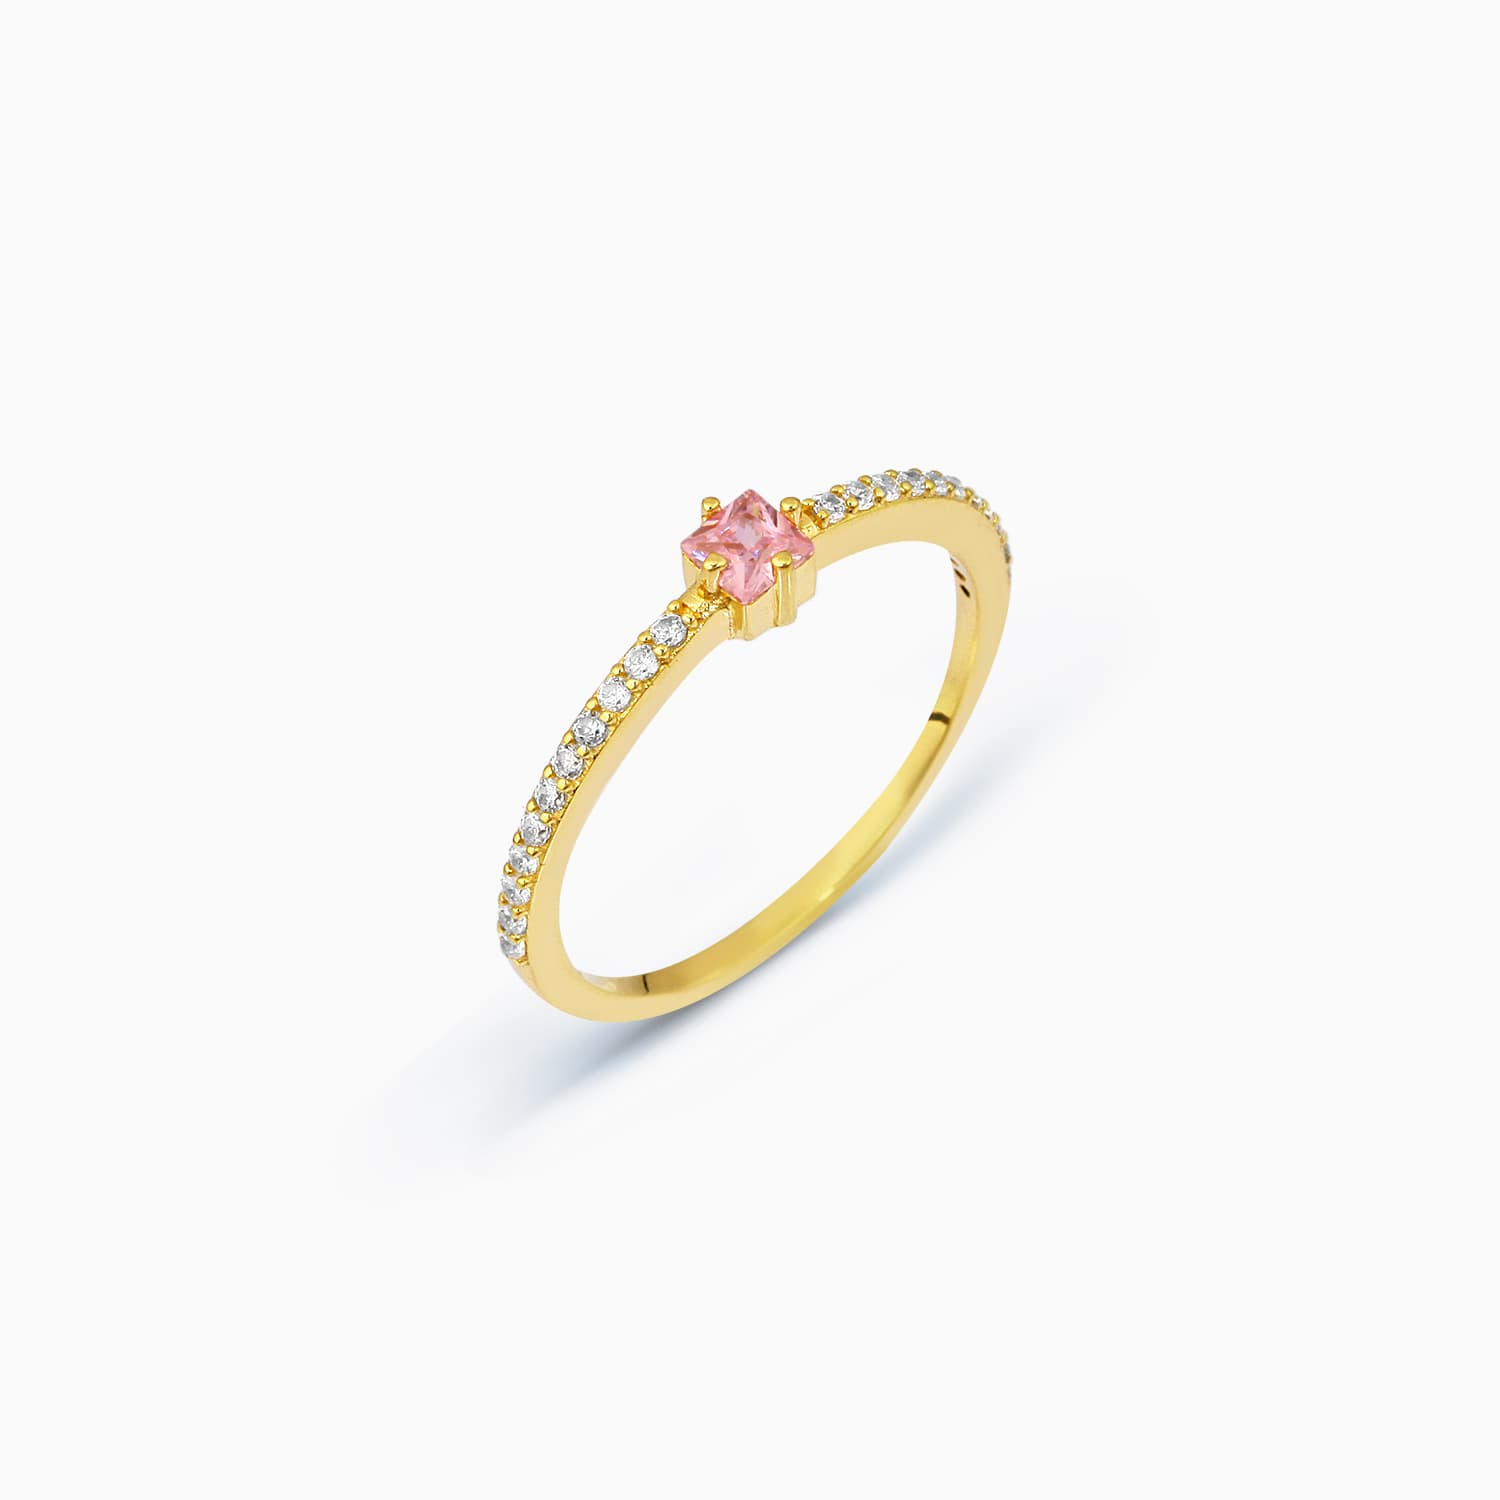 Simes Colored Stone Ring - Pink